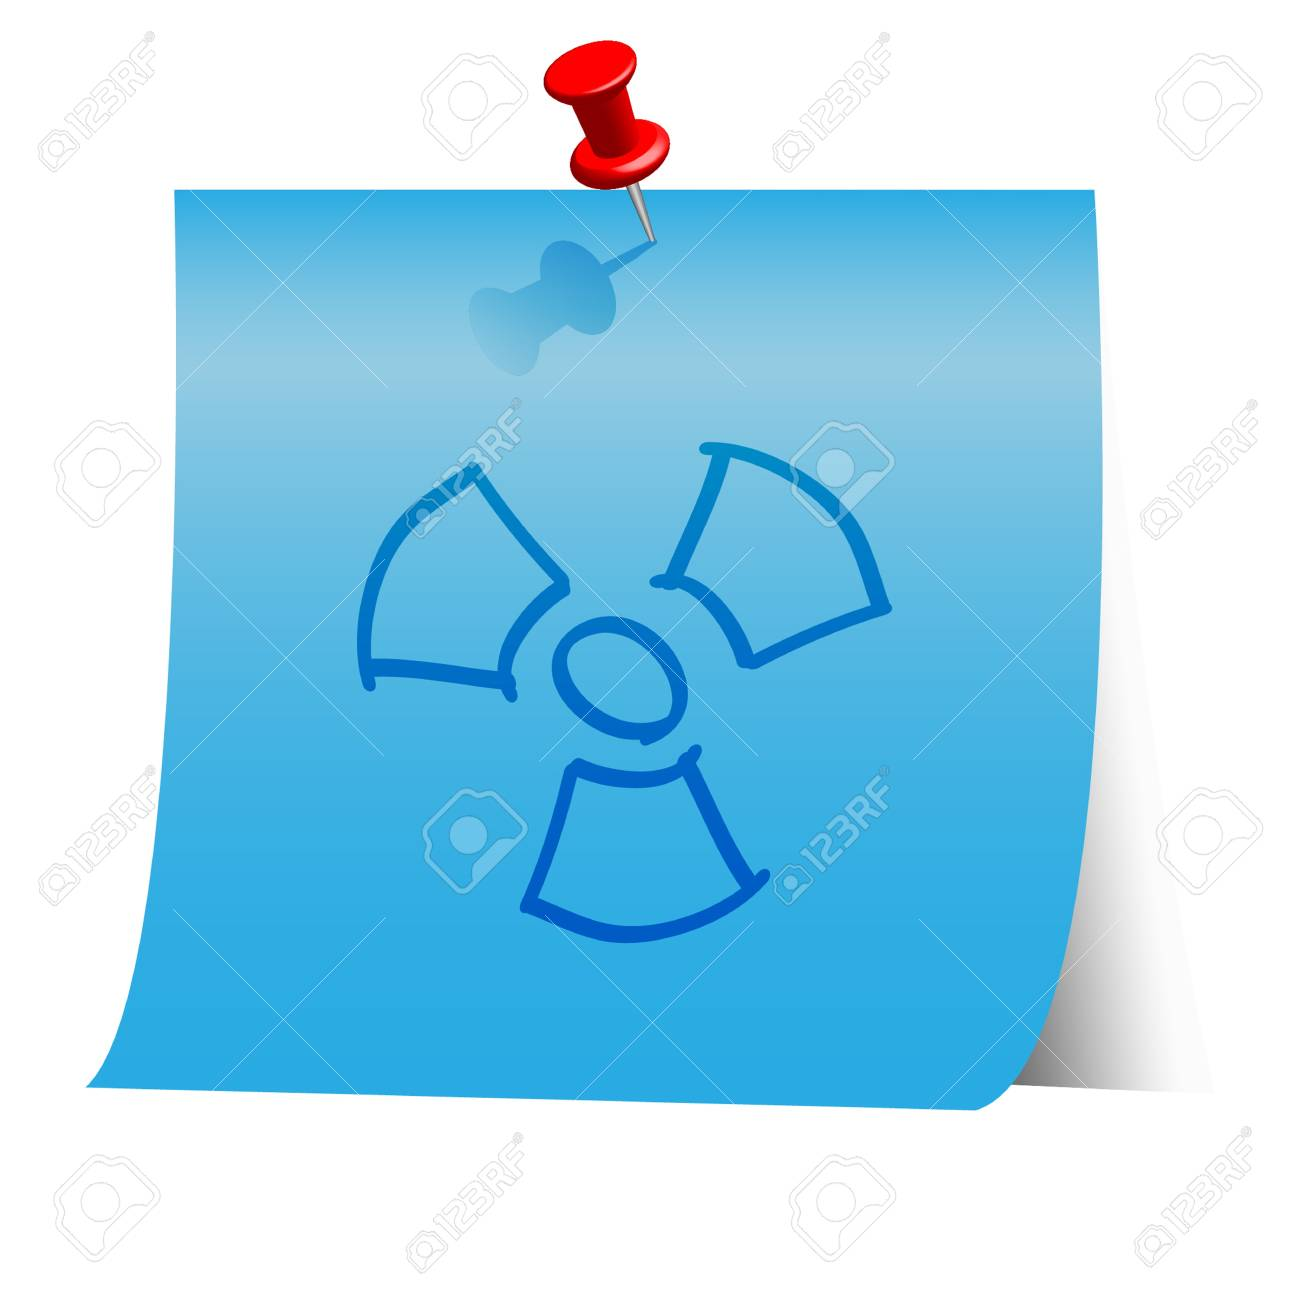 Energy resource icon on blue paper note. Stock Vector - 18139961